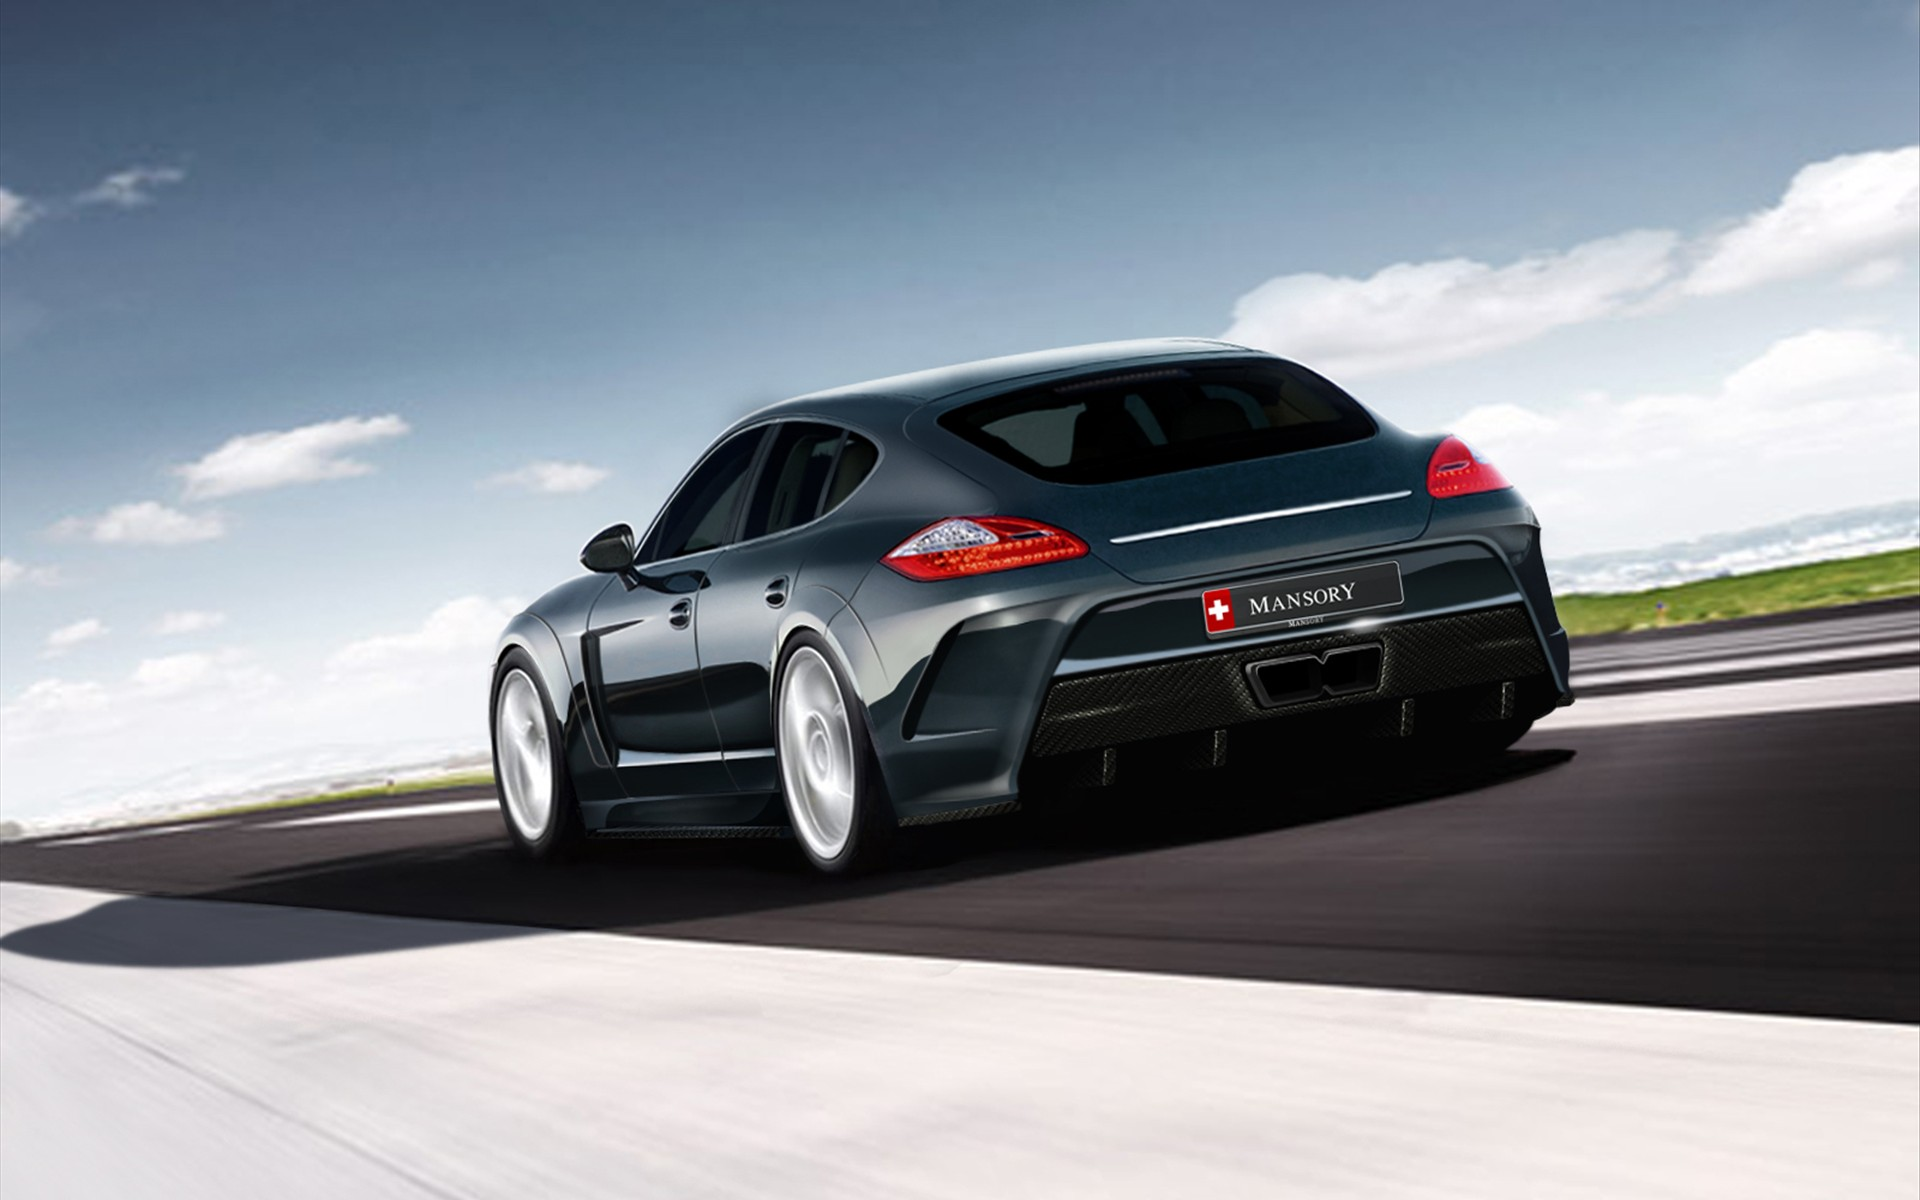 Mansory Porsche Panamera 3 Wallpaper HD Car Wallpapers 1920x1200